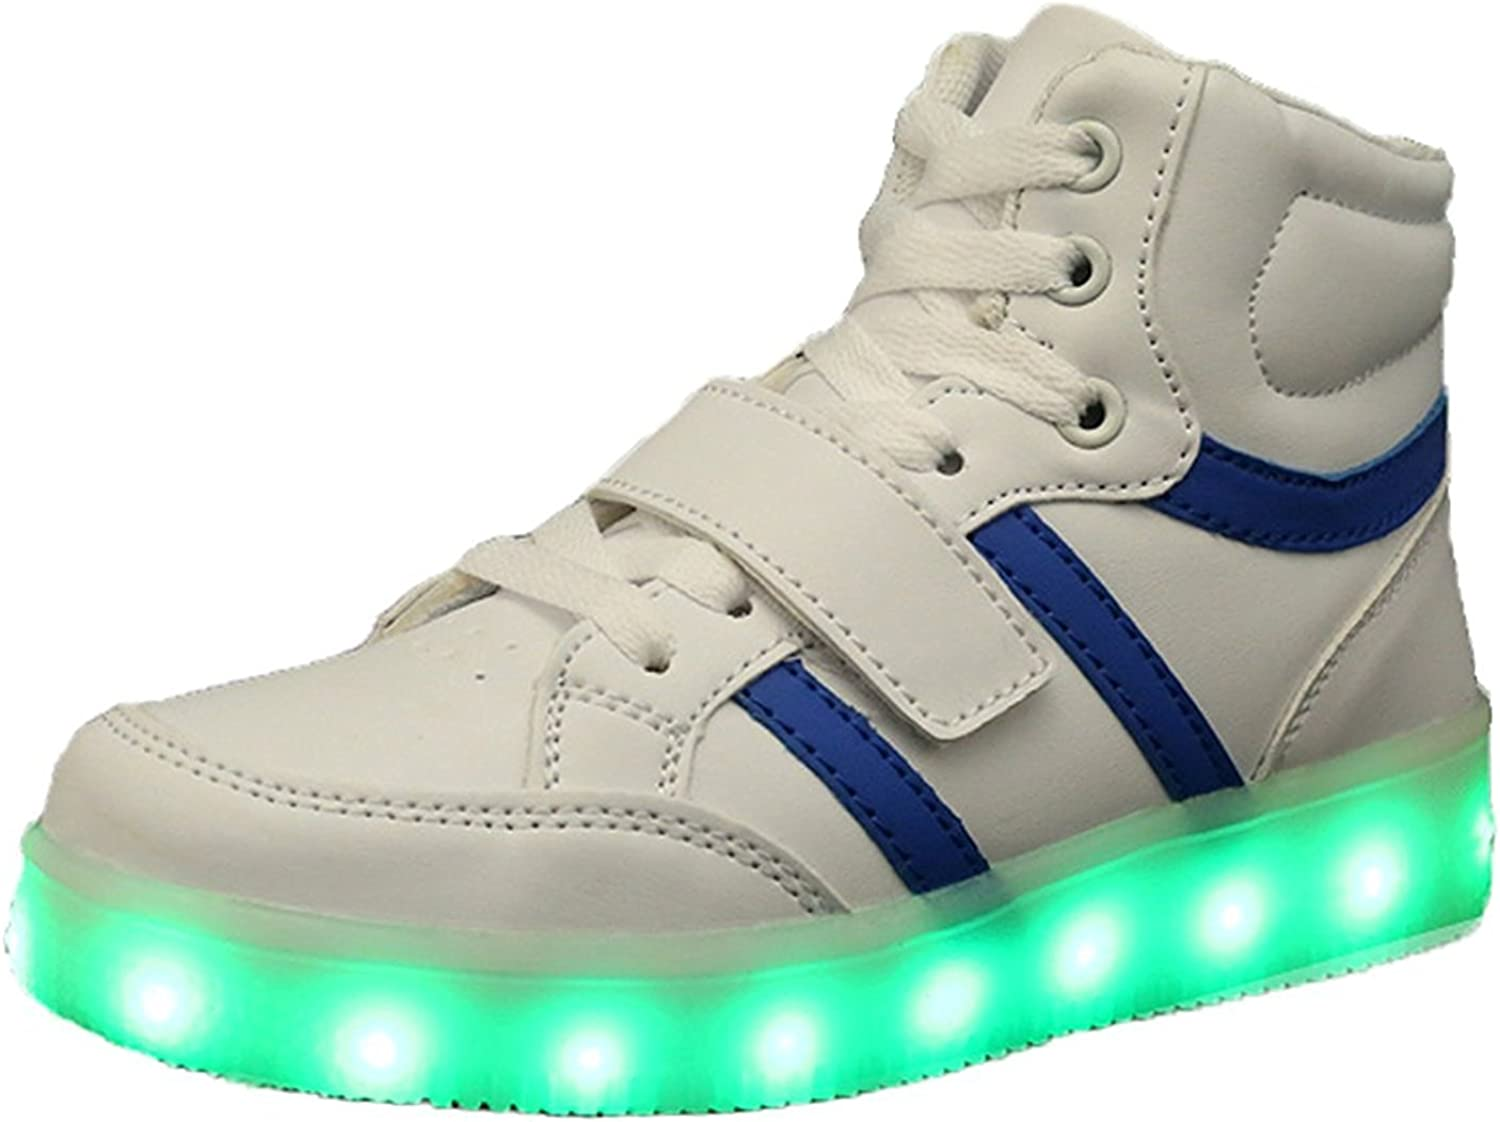 Toddler//Little Kid//Big Kid FG21ds21g Kids Boy and Girls High Top Led Sneakers Light Up Flashing Shoes